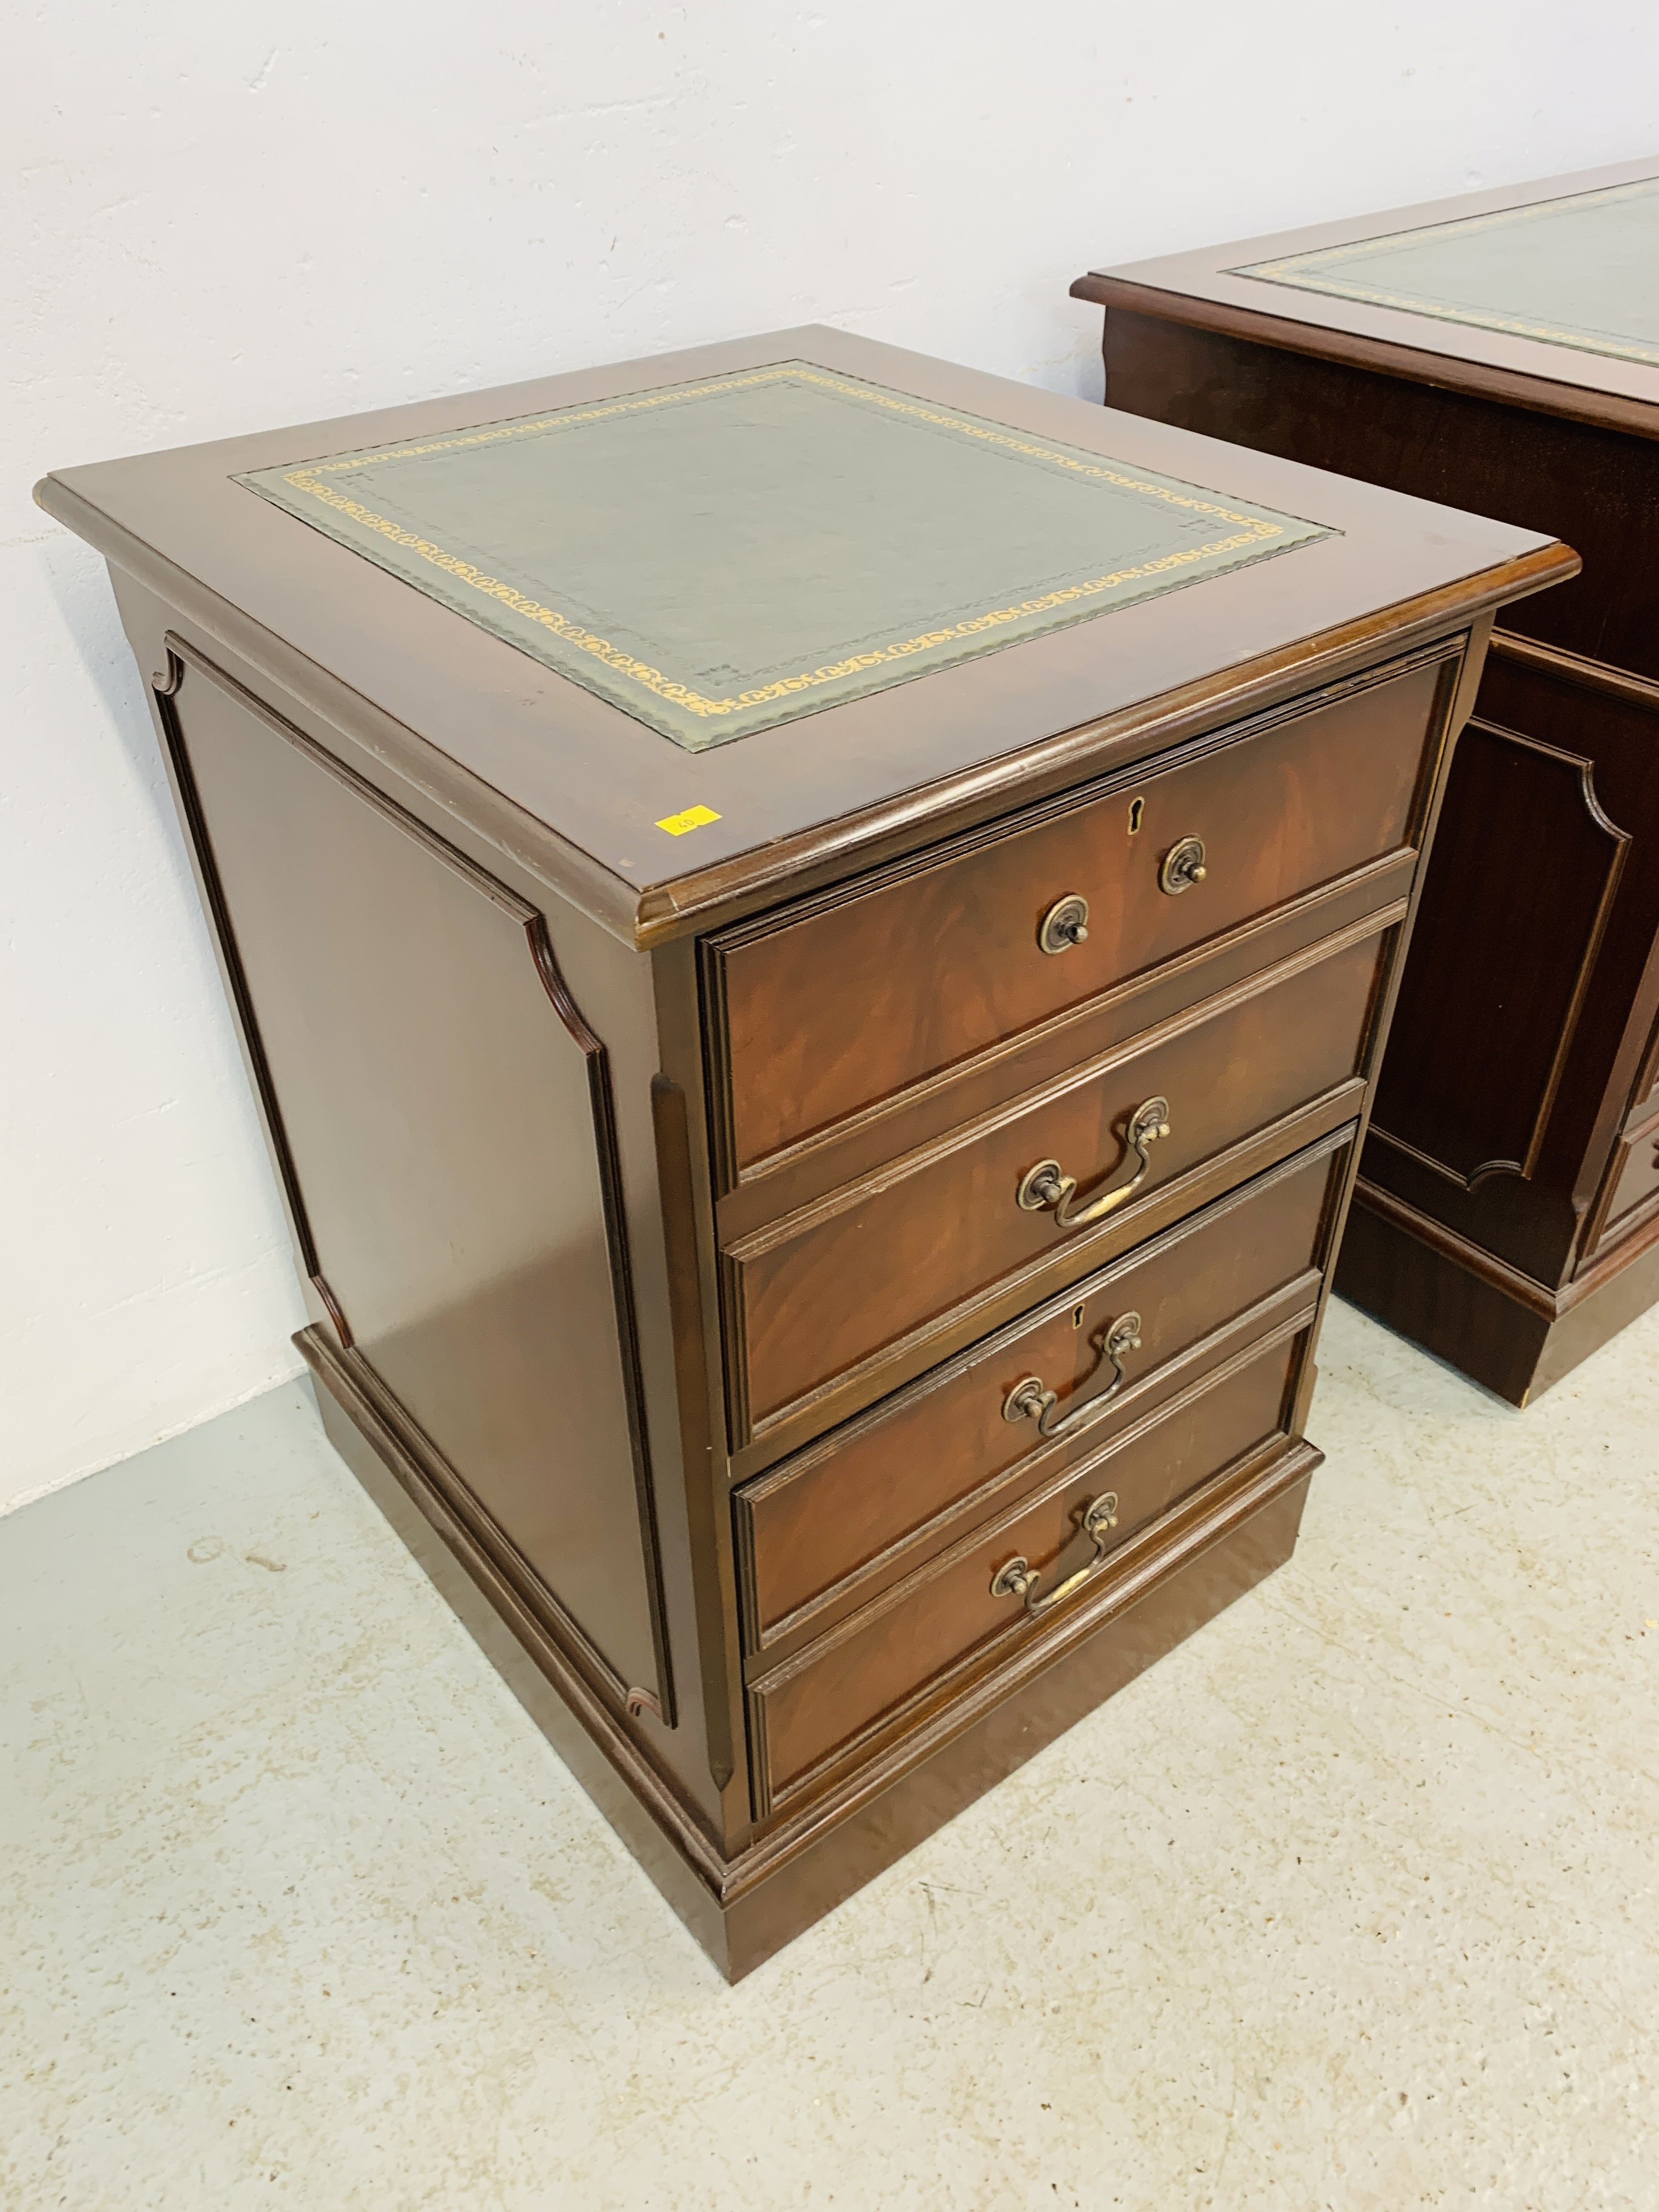 A REPRODUCTION MAHOGANY FINISH NINE DRAWER KNEE HOLE DESK WITH GREEN TOOLED LEATHER INSERT TO TOP - Image 11 of 14